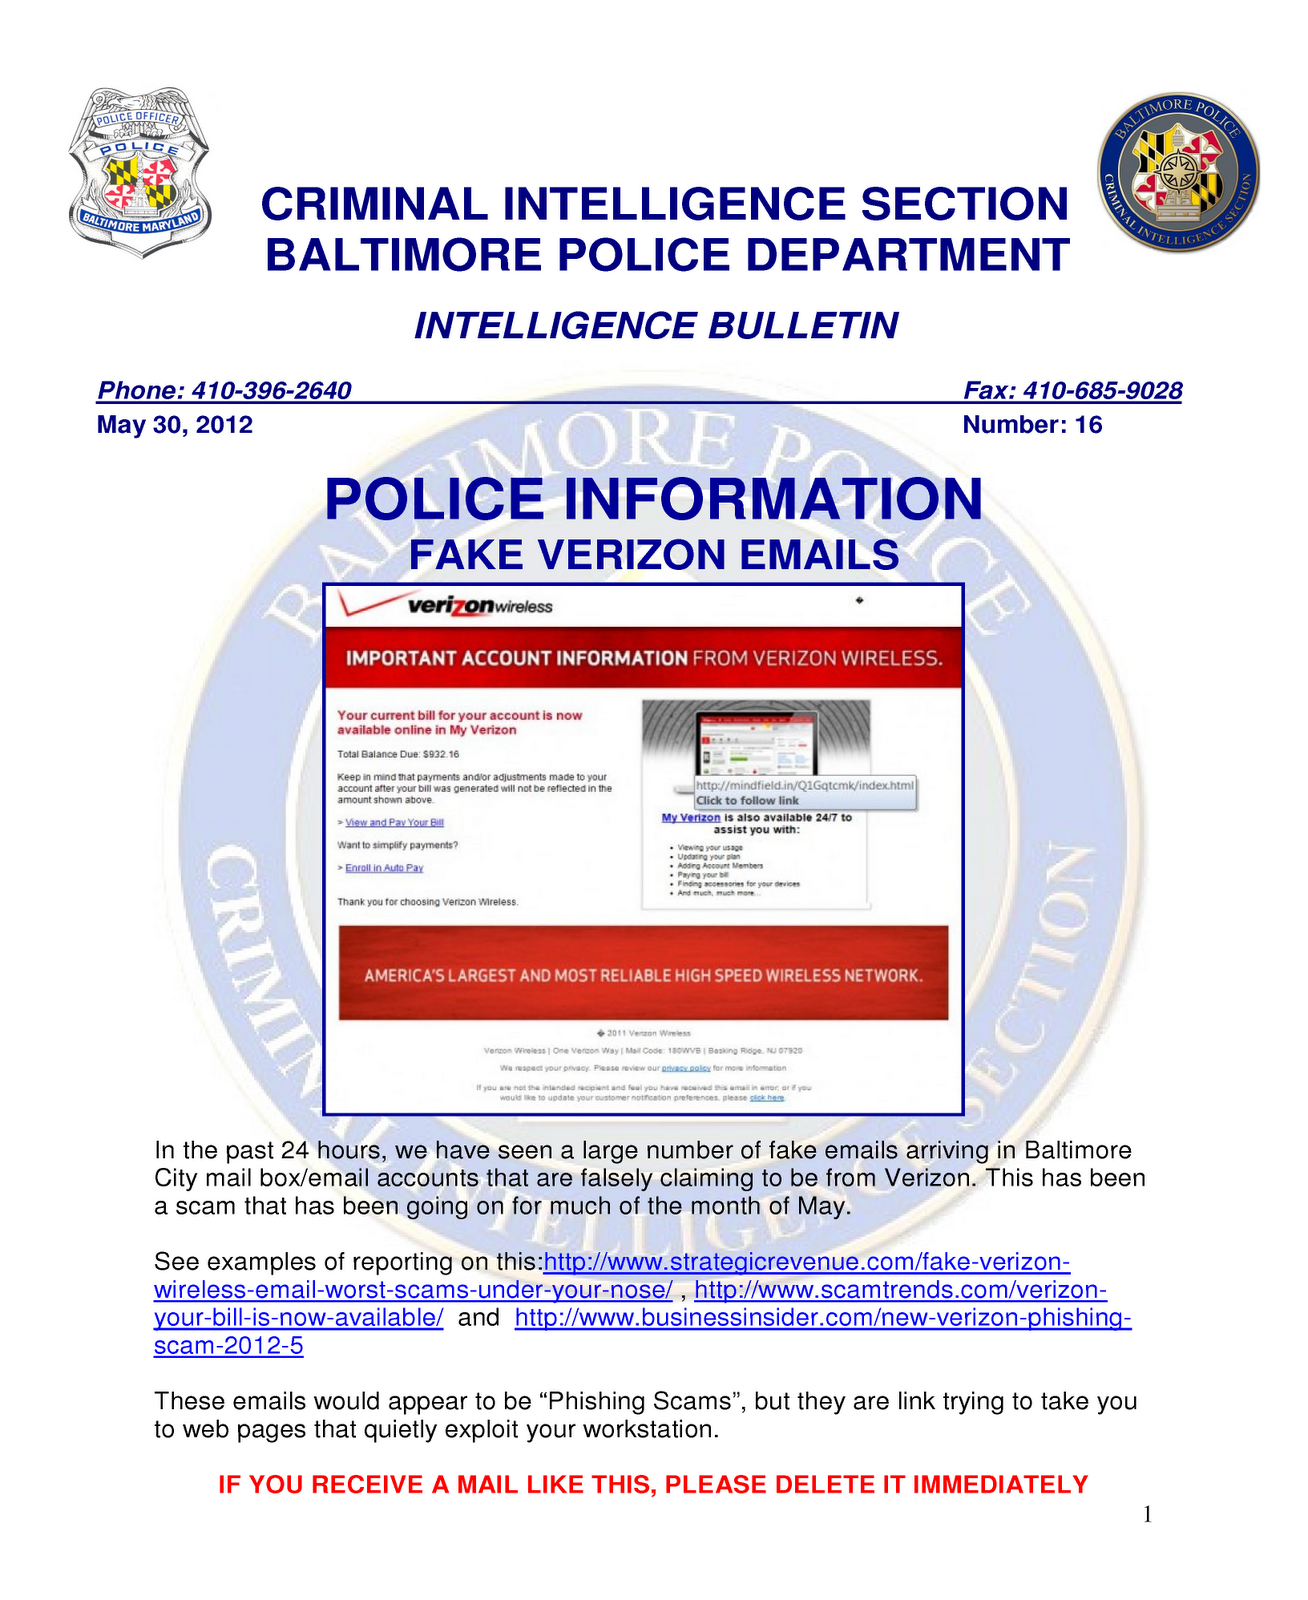 West Chester Technolgy Blog: Verizon Email Scam Confirmed